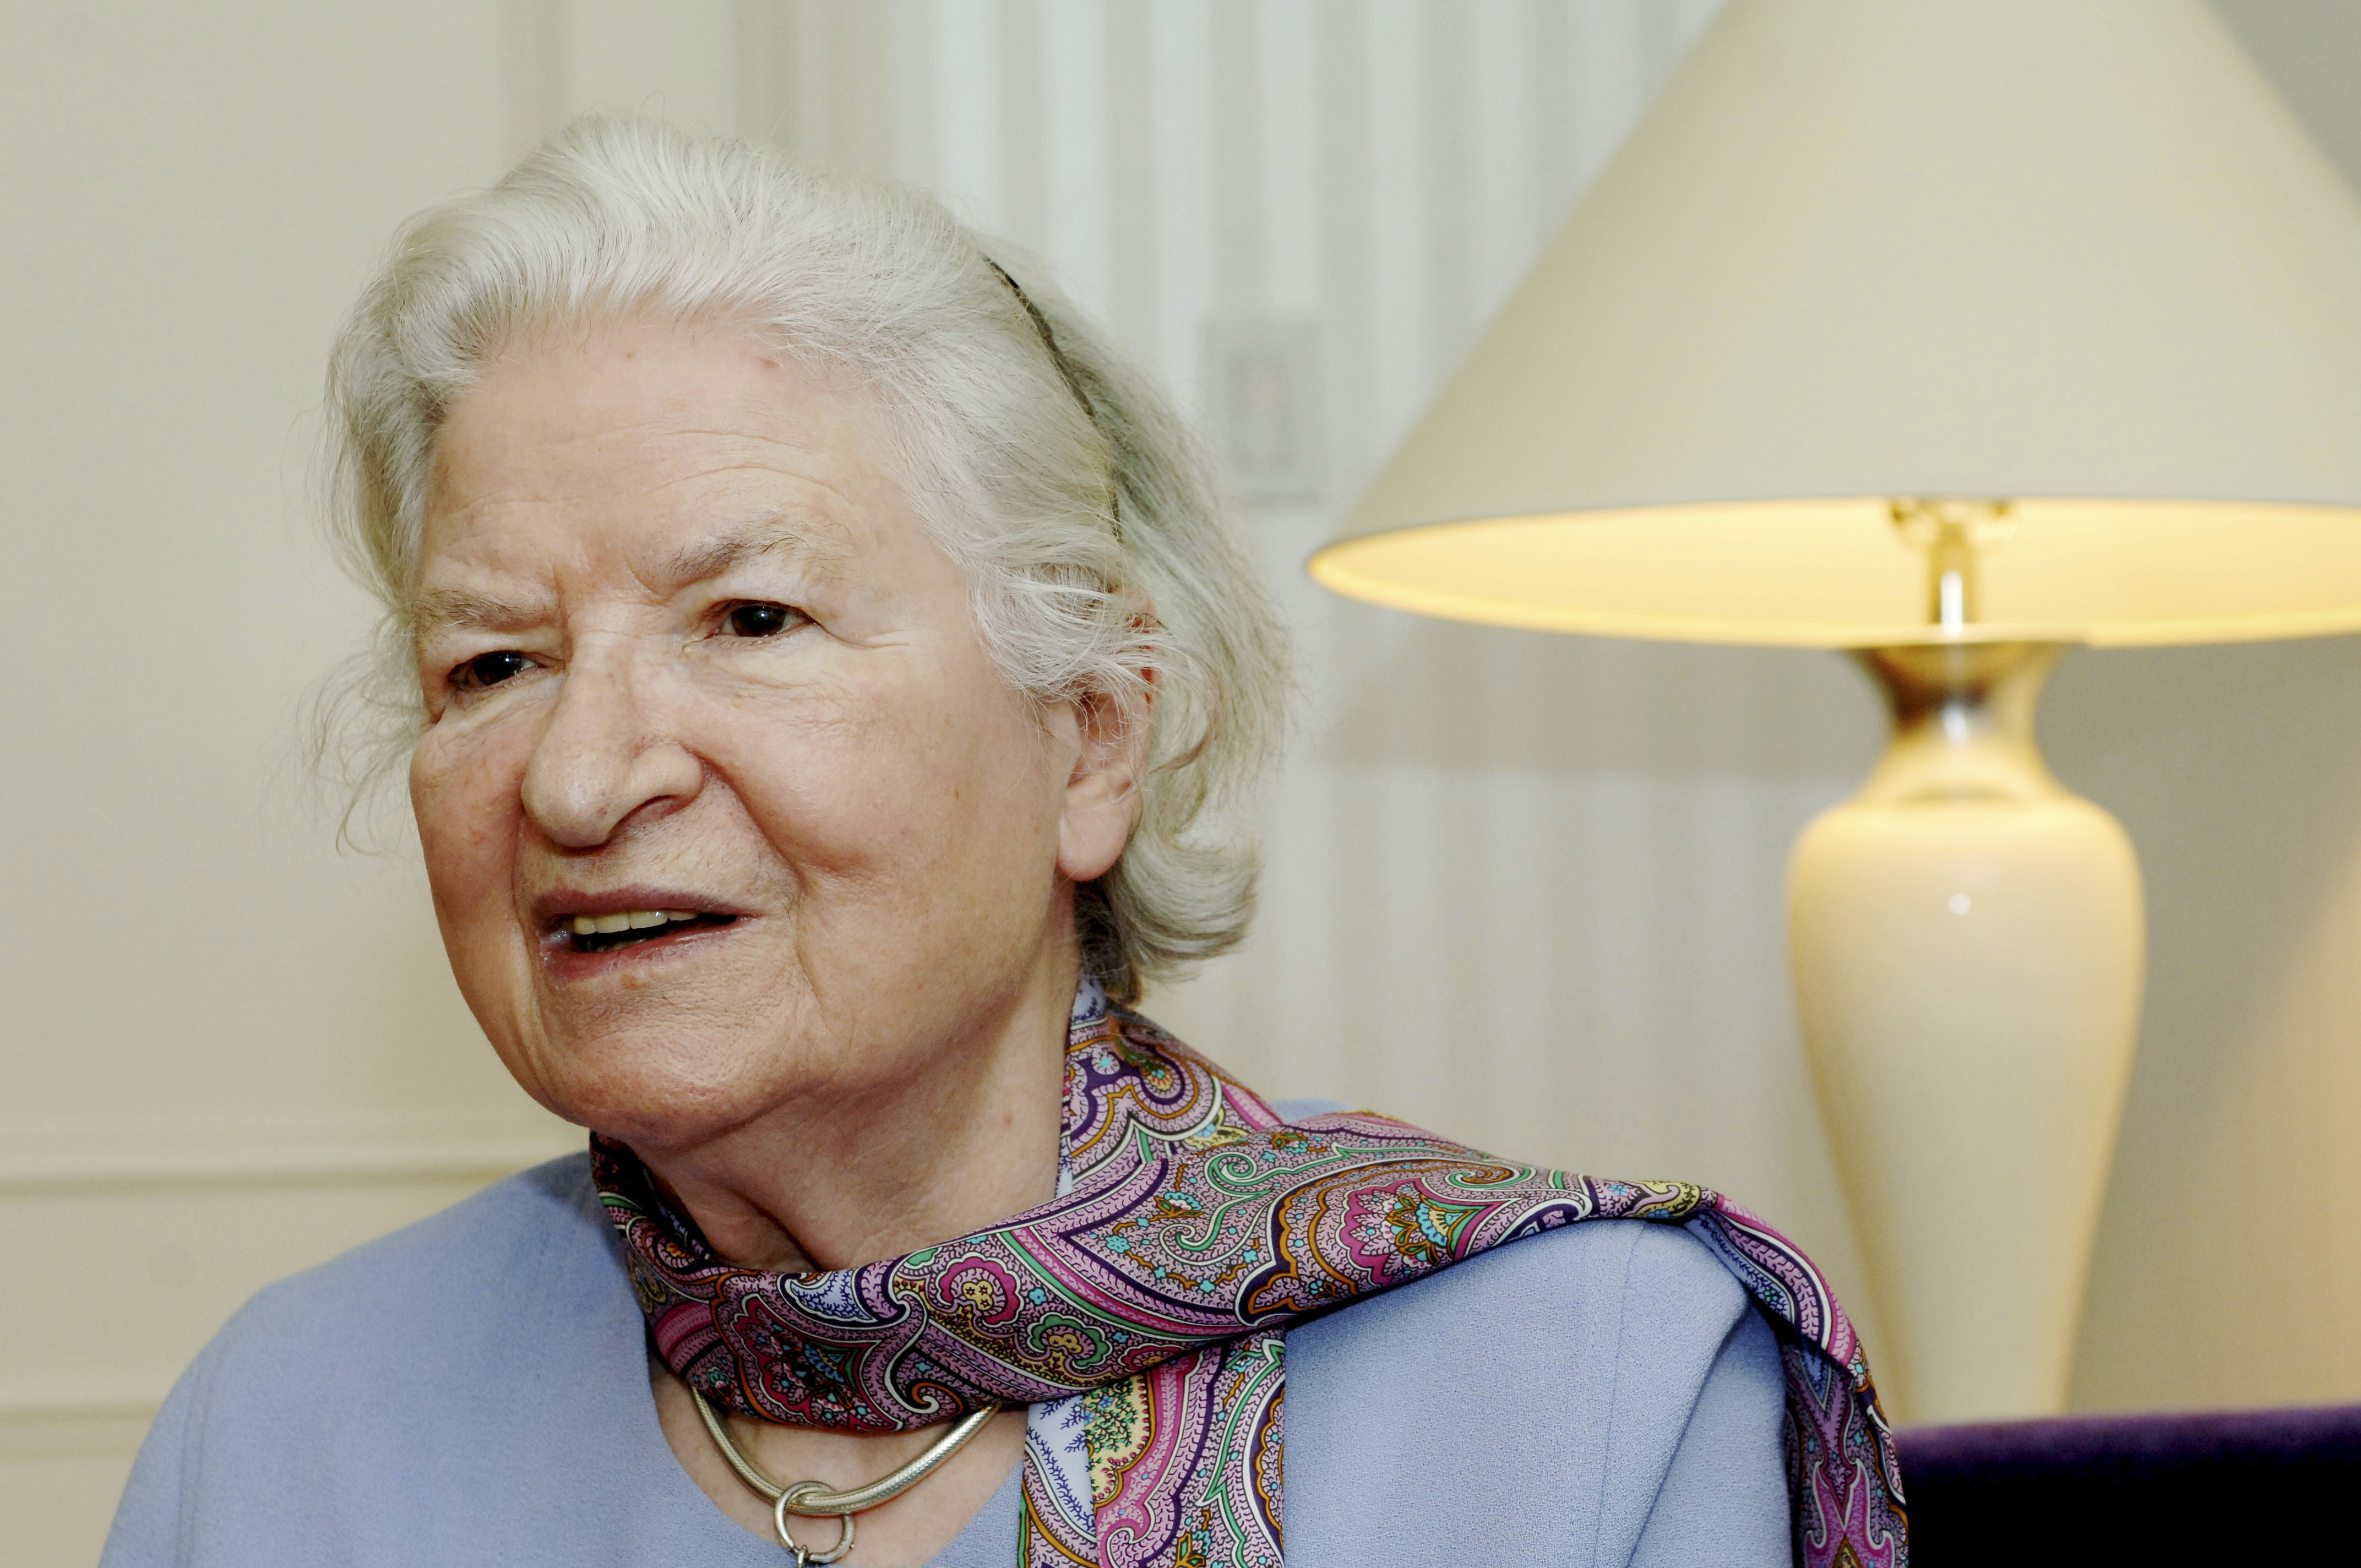 P.D. James Believed Mysteries Were Made Of Clues, Not Coincidences